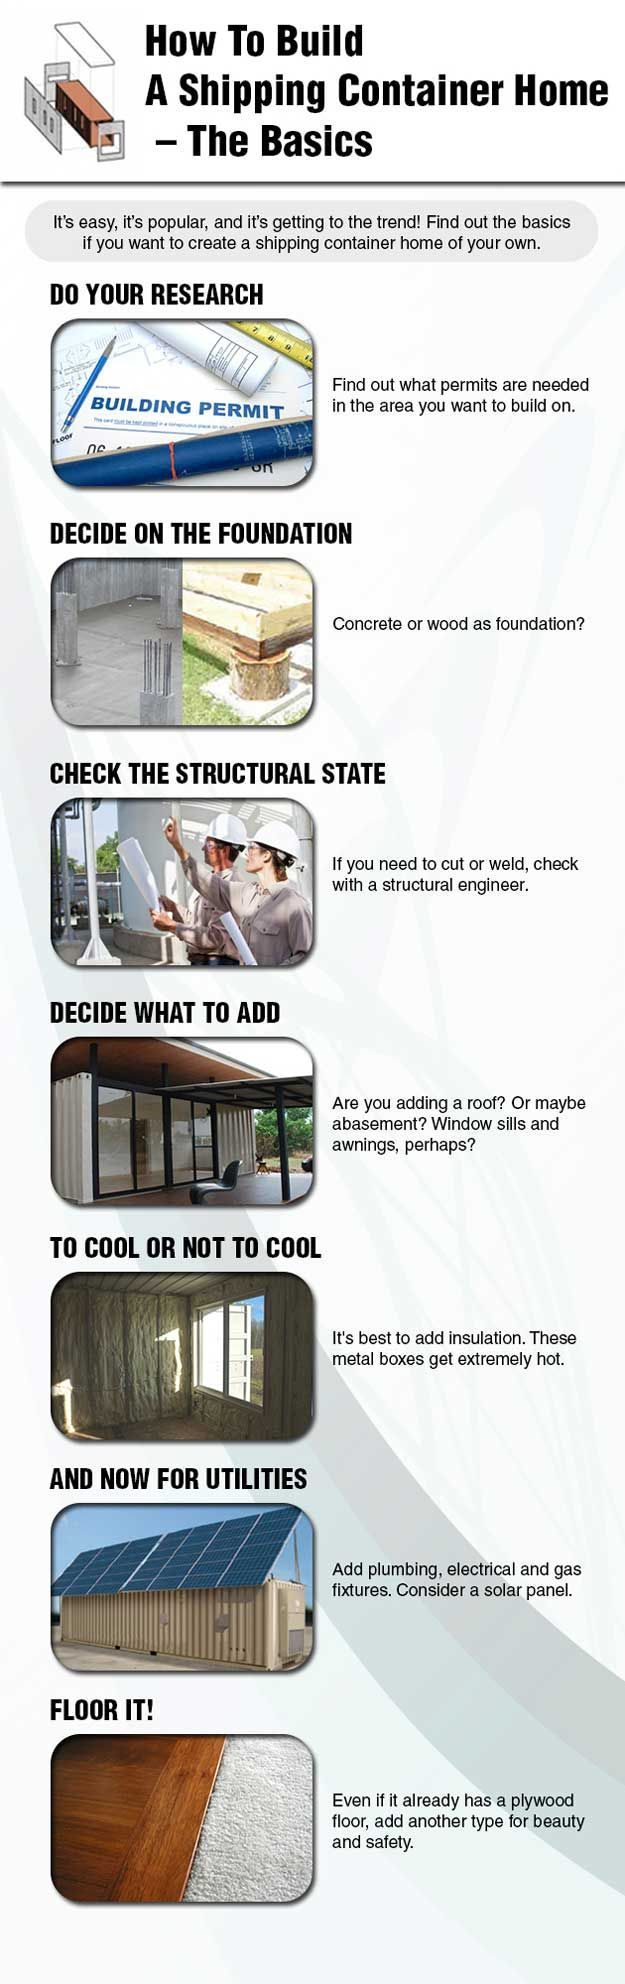 How to Build a Container Home Ingographic |12 Cool Container Homes | How To Build A Beautiful House From The Container - Awesome DIY Ideas and Design You Must See! | http://pioneersettler.com/cool-container-homes/